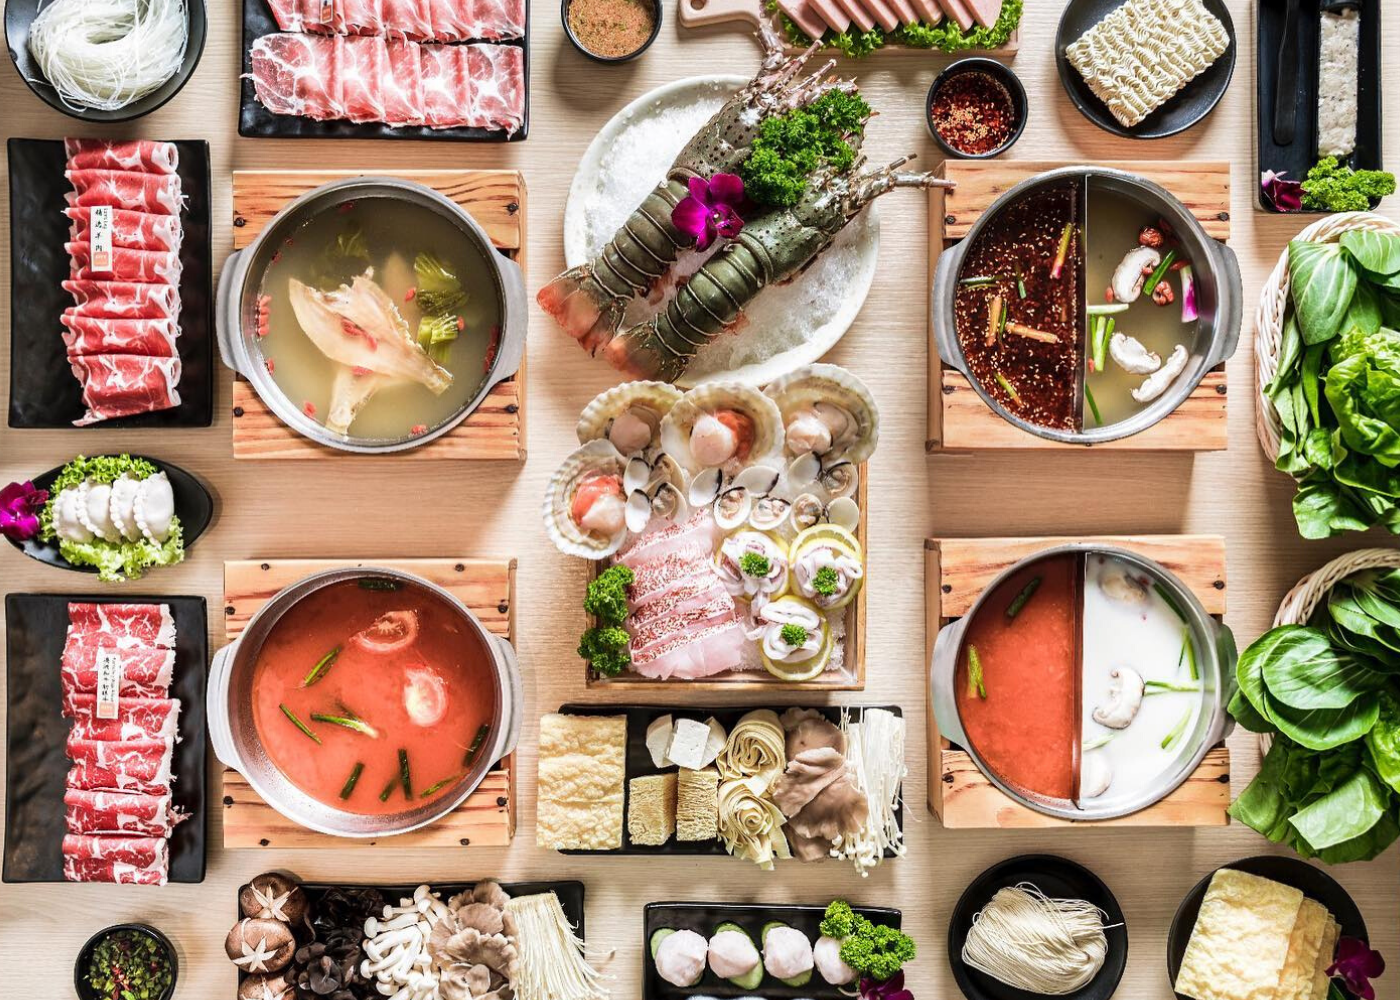 City Hot Pot | steamboat deliveries